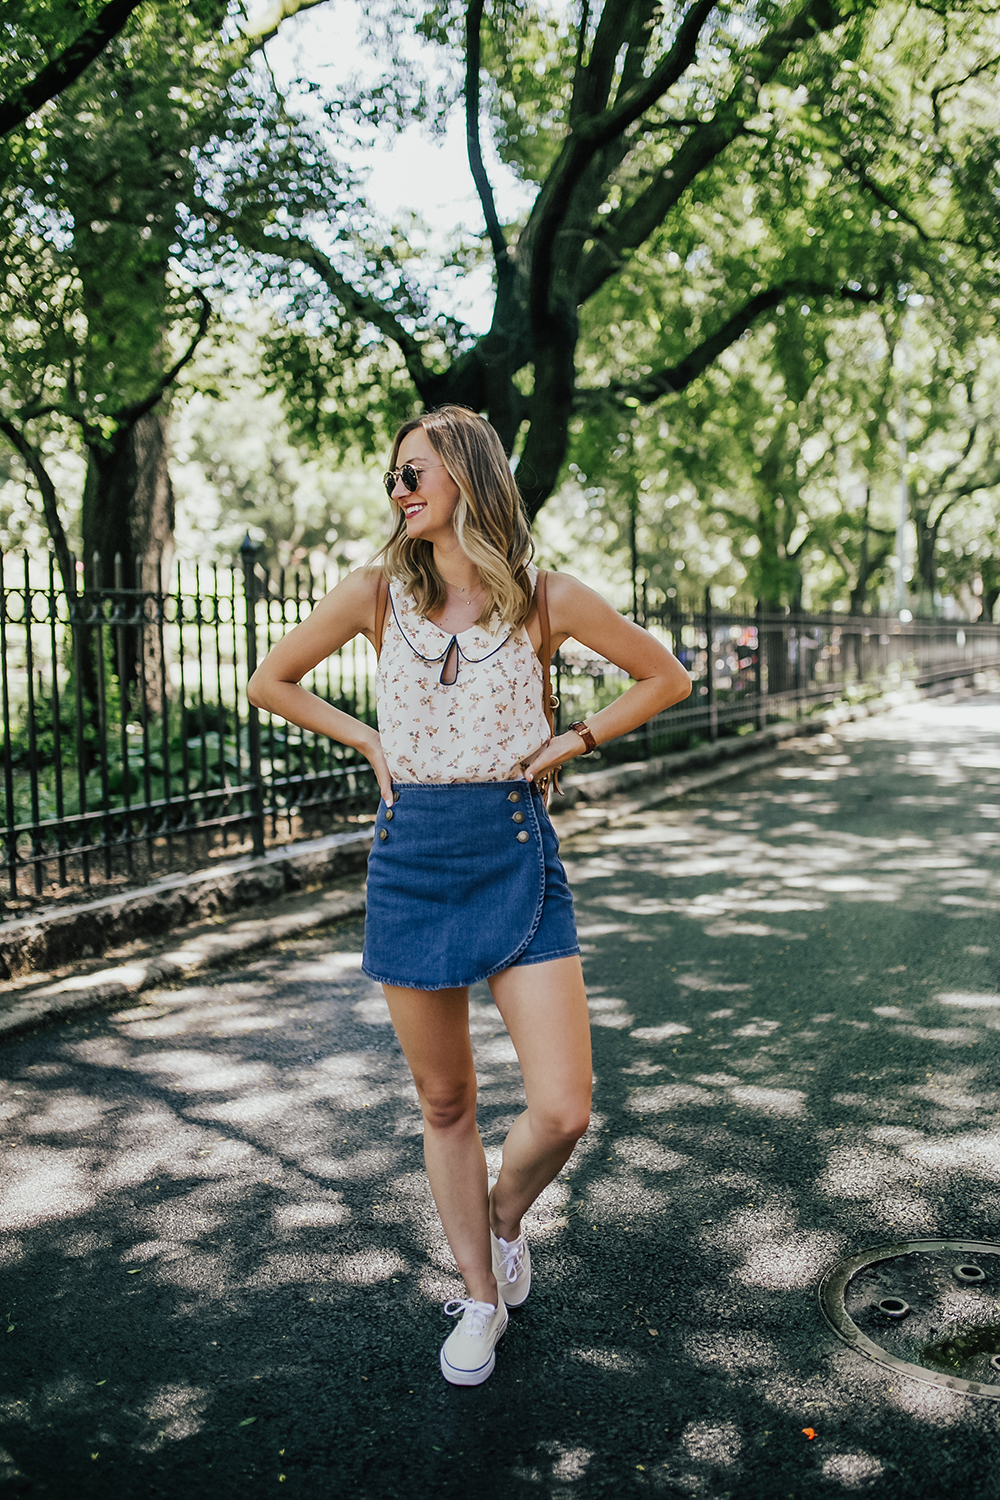 livvyland-blog-olivia-watson-new-york-city-cobble-hill-brooklyn-modcloth-skort-peter-pan-collar-top-vans-classic-sneakers-summer-outfit-3